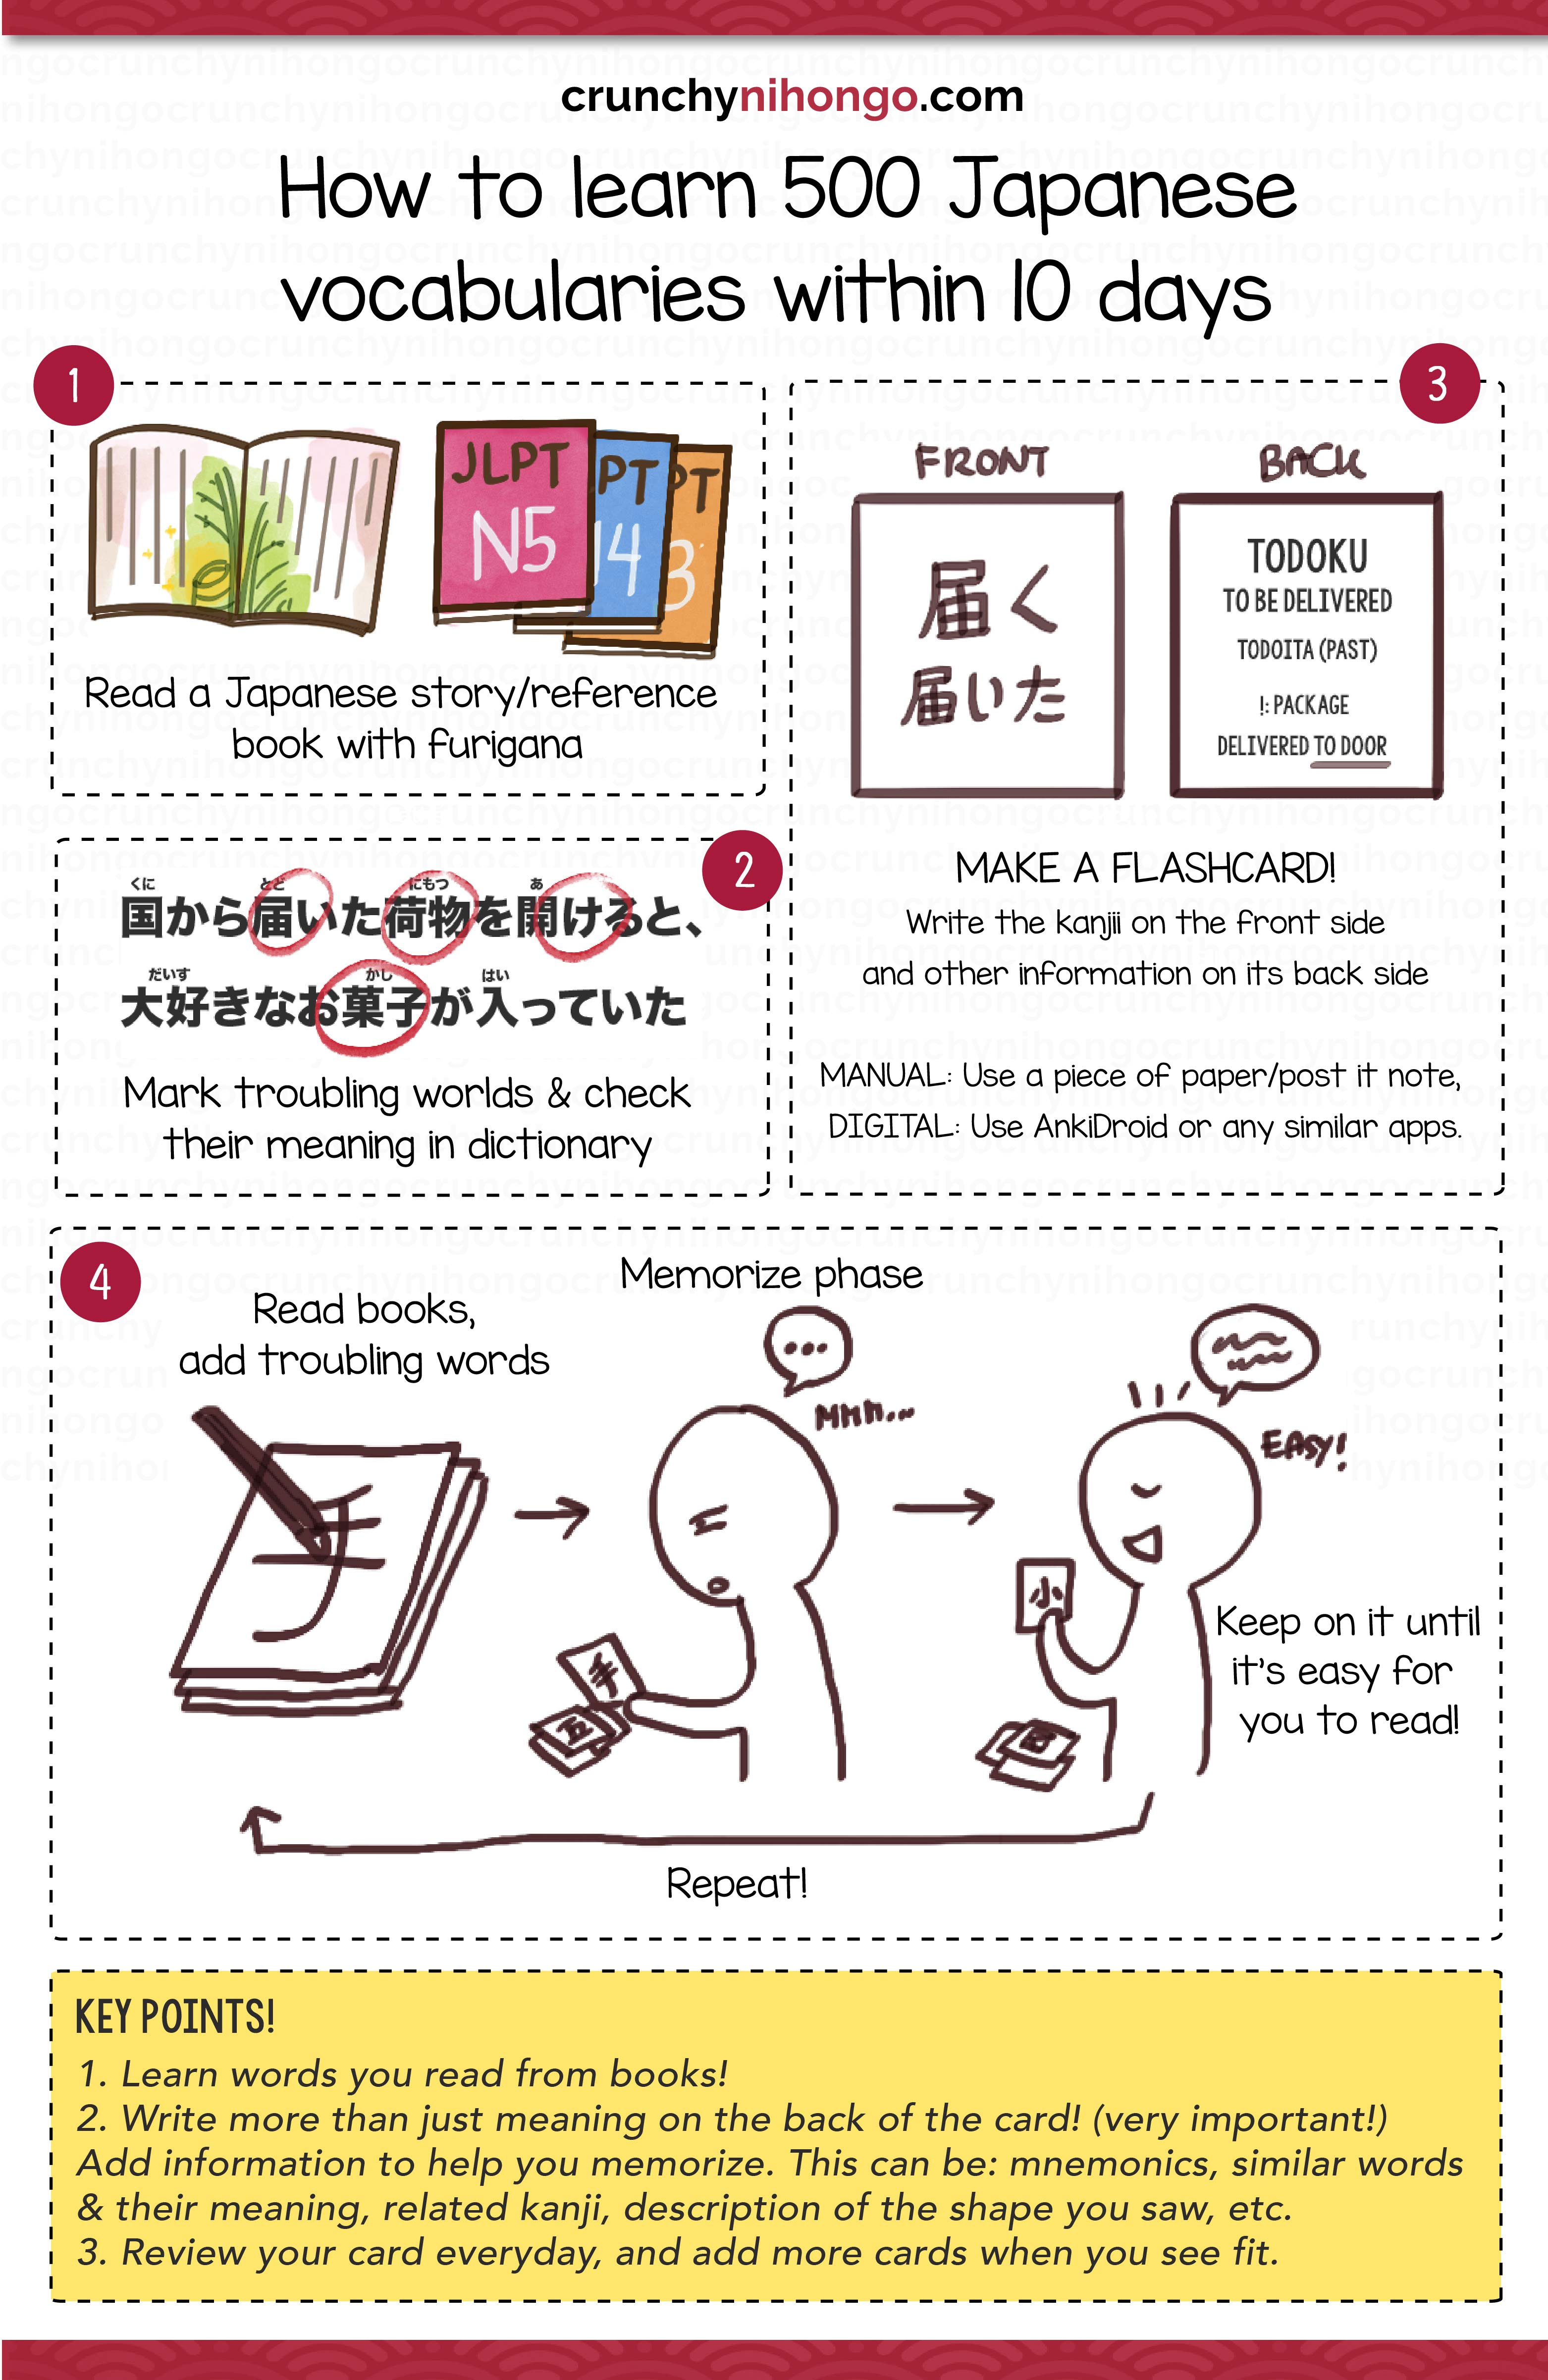 The Most Effective Way To Improve Your Kanji Amp Vocabulary Skills Crunchy Nihongo